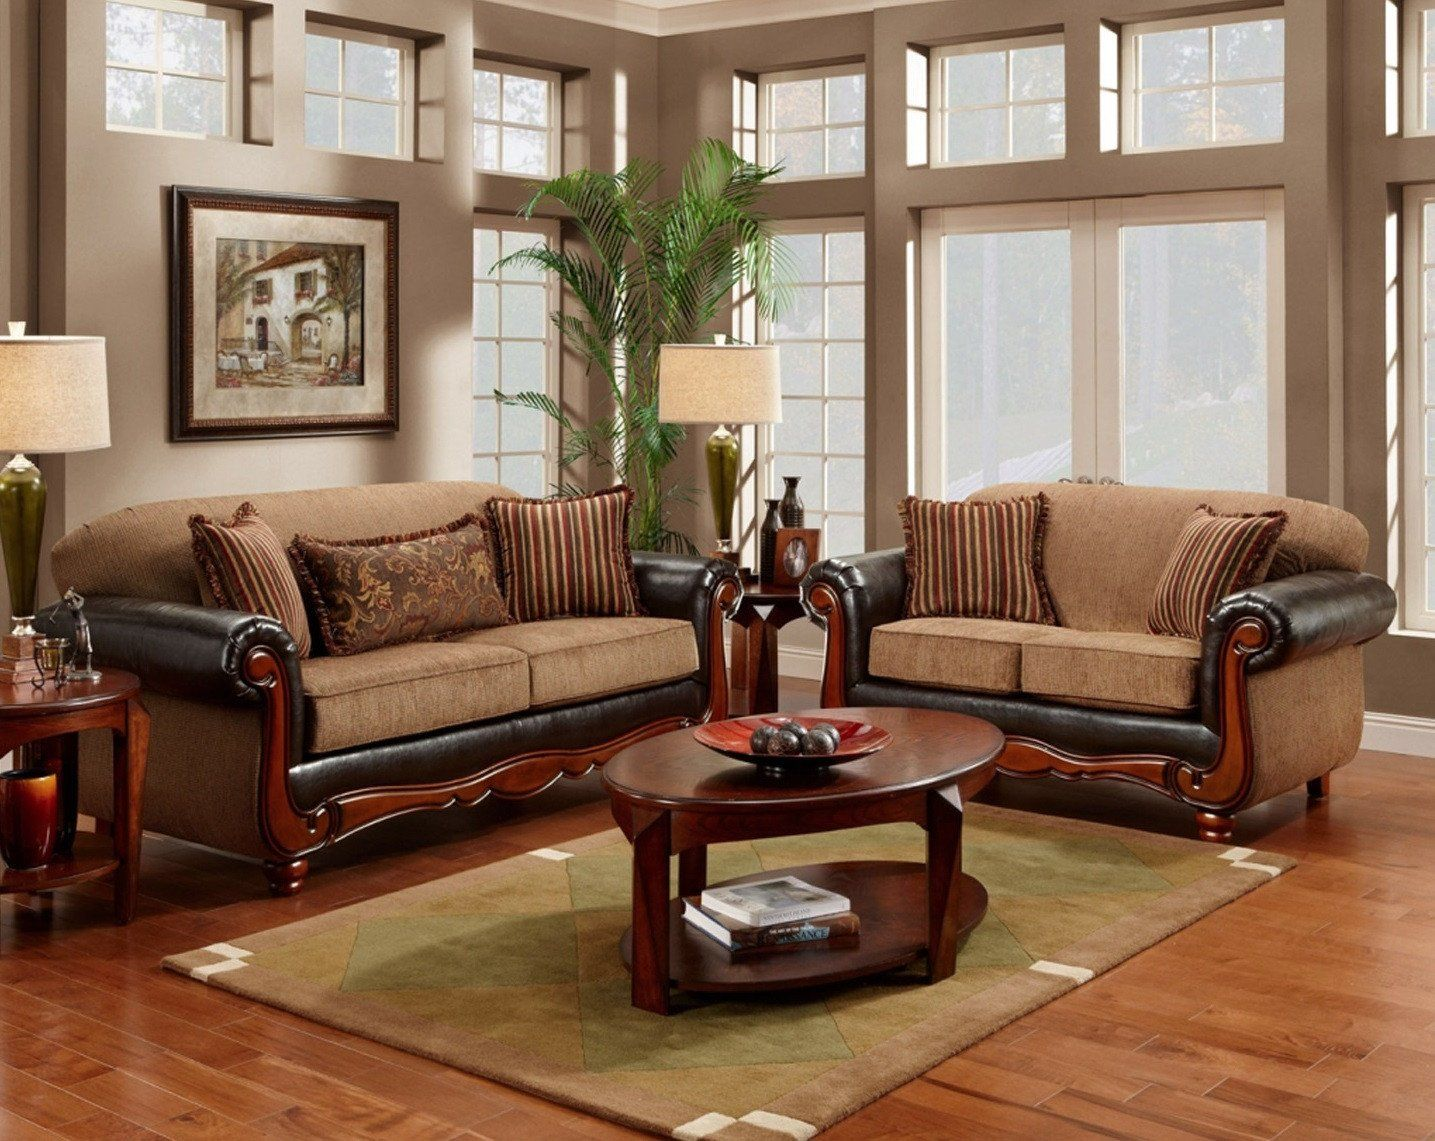 Best 35 Fresh Living Room Furniture Ideas In 2020 With Images 400 x 300